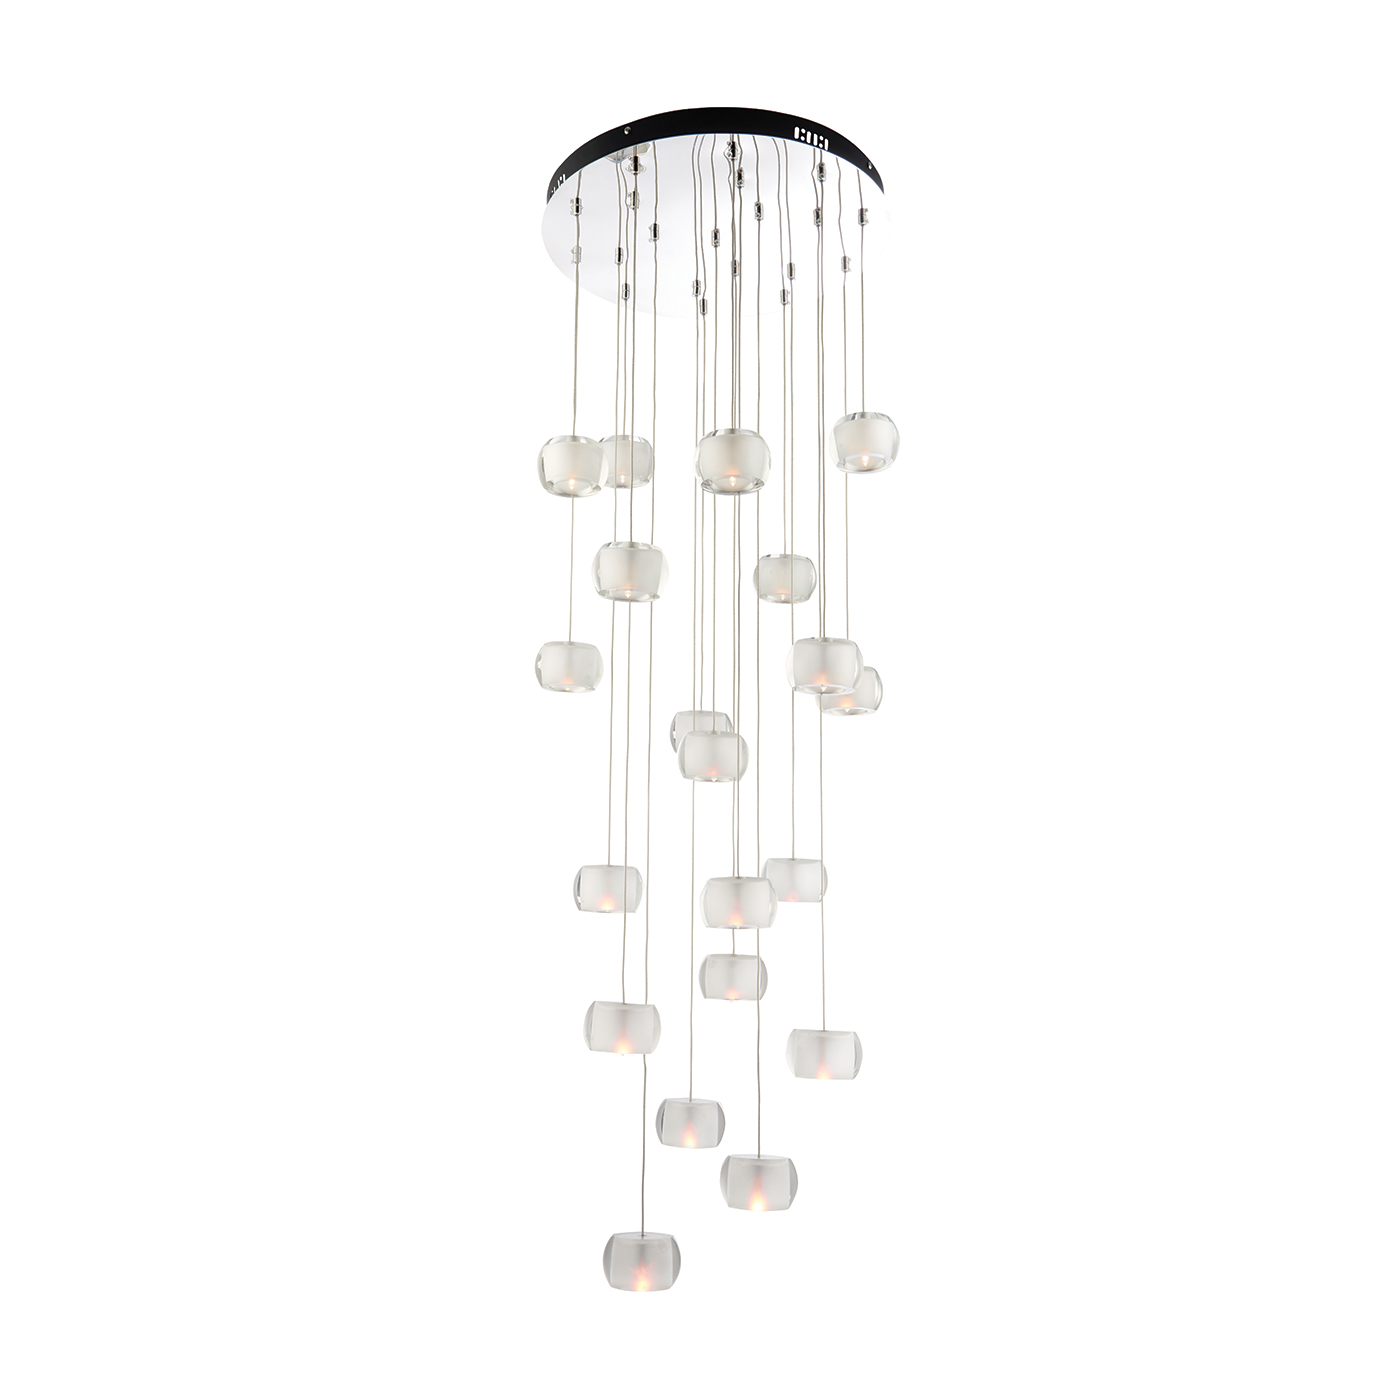 Endon Seymour pendant 20x 10W Chrome effect clear crystal glass frosted inner